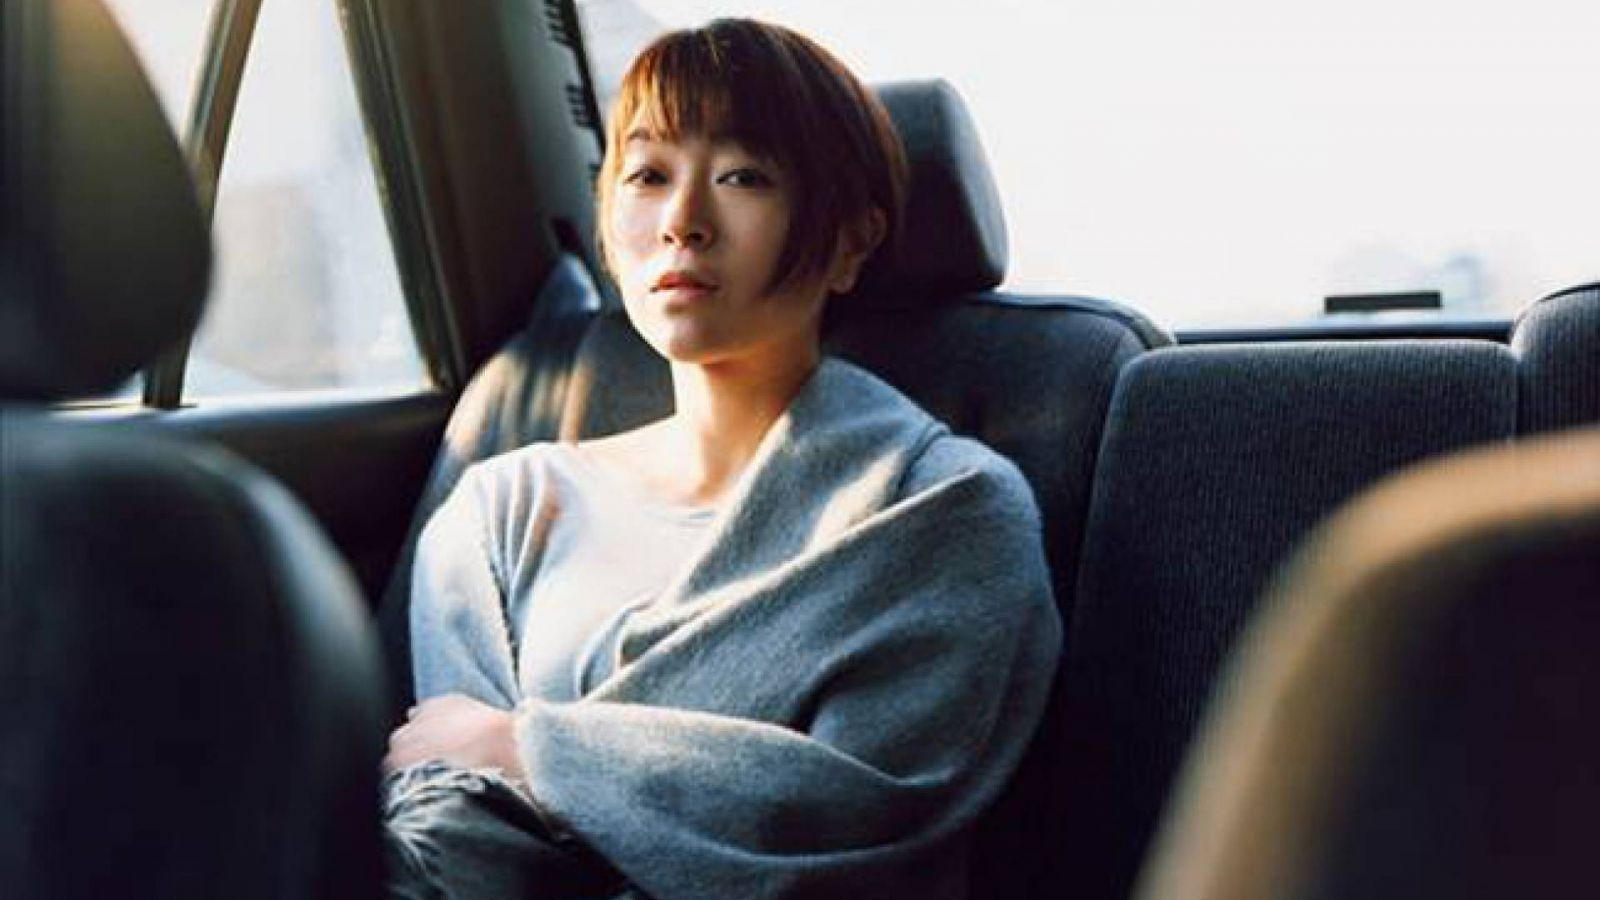 Utada Hikaru to Release Two Digital Singles © Sony Music Labels Inc. All rights reserved.